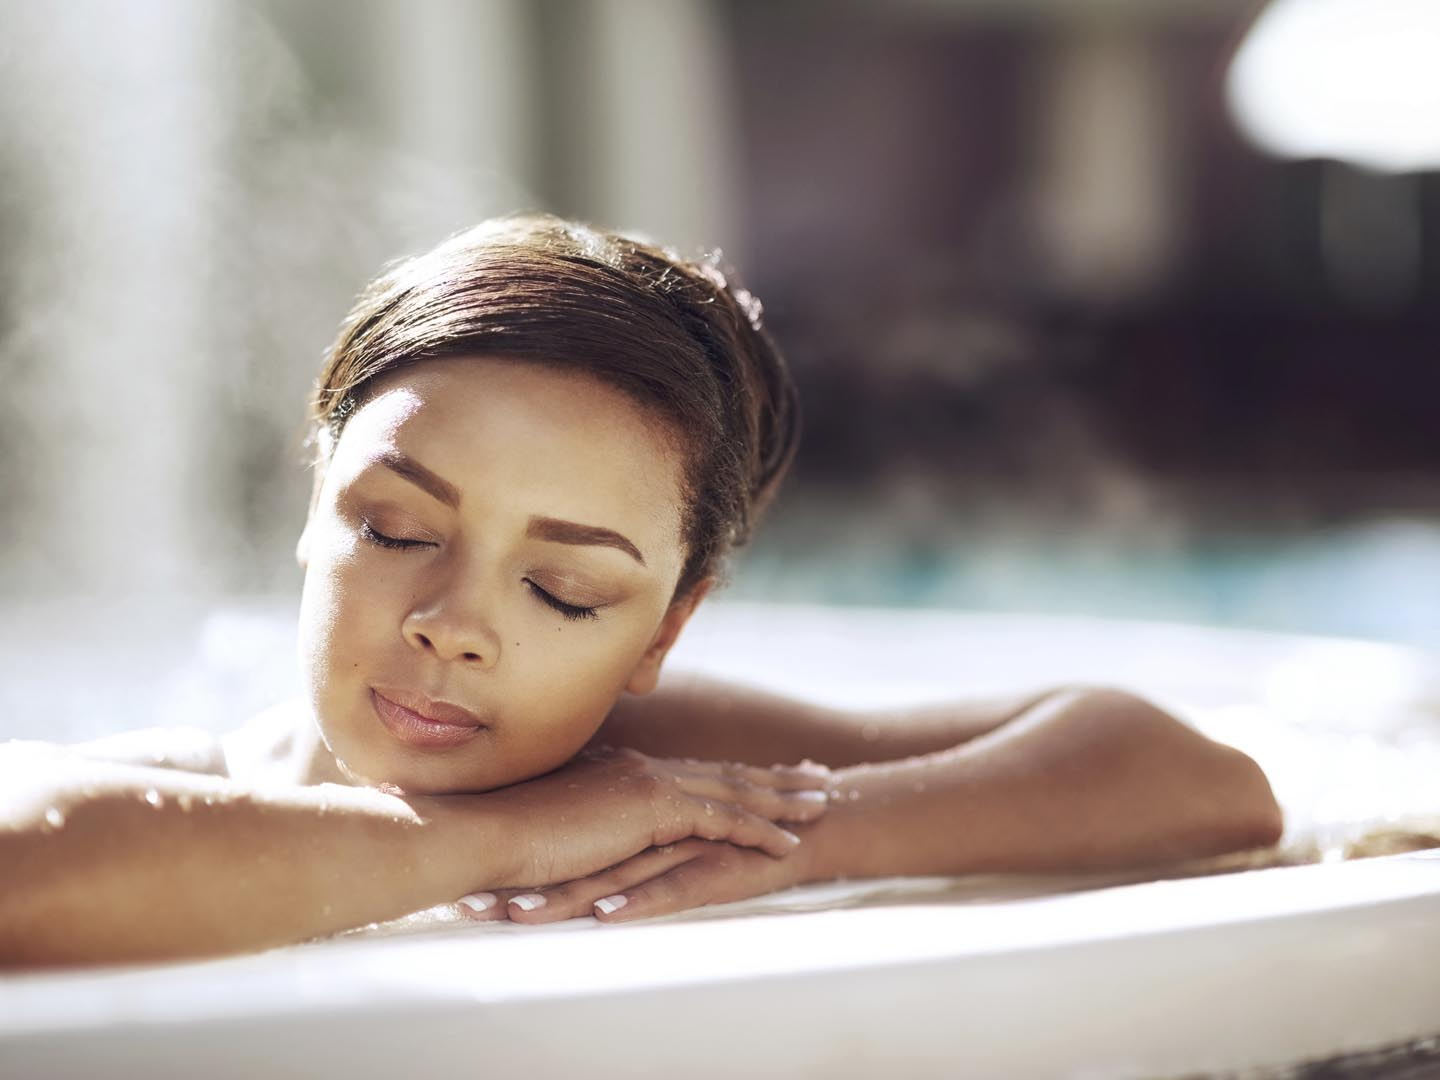 Are Hot Tubs Unhealthy? - Ask Dr. Weil